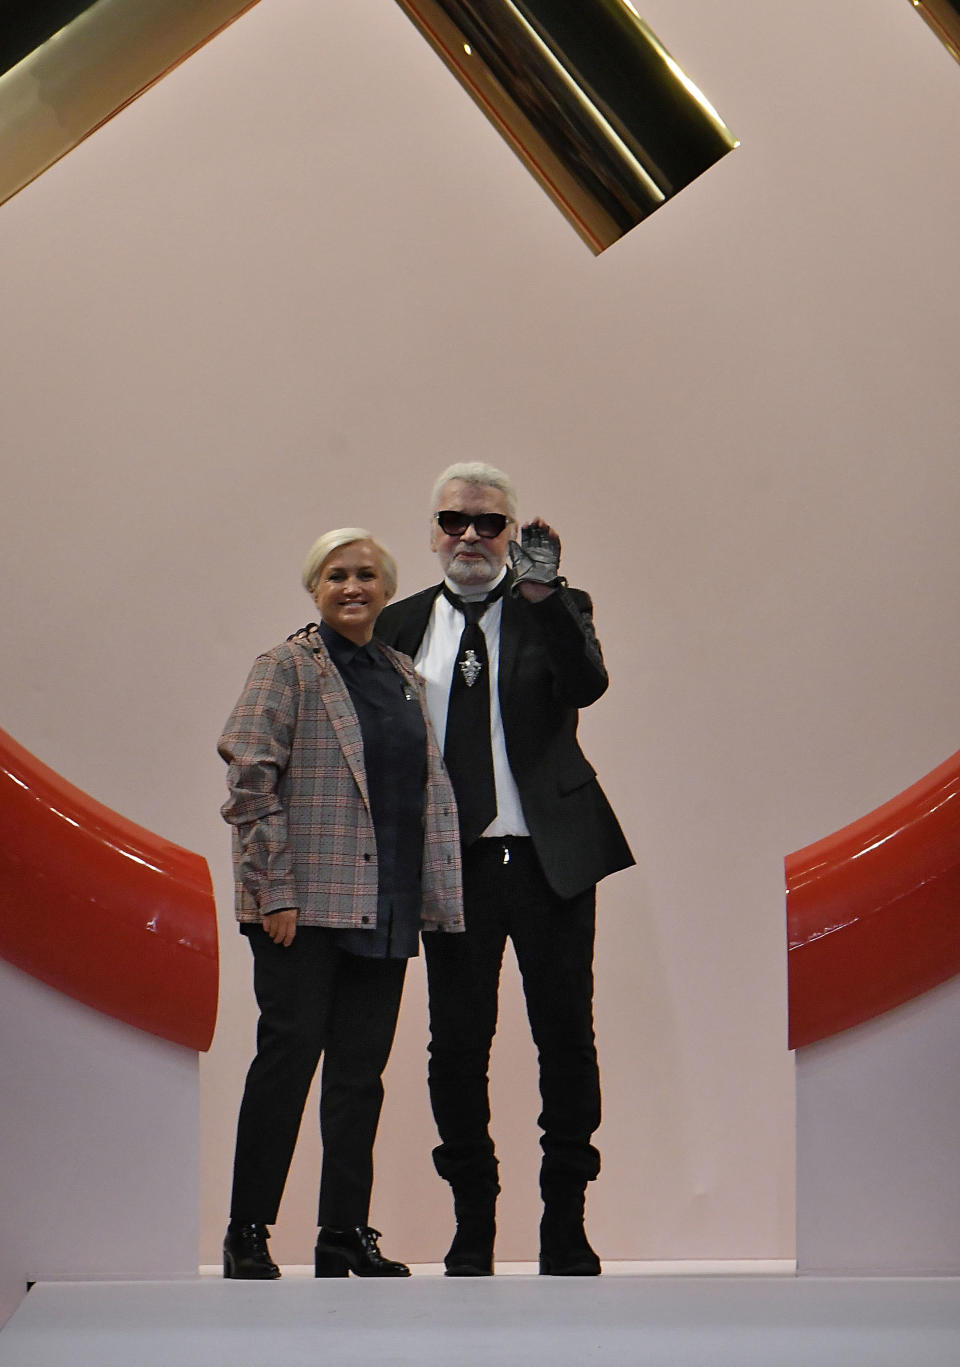 <p>Karl Lagerfeld walks out with Silvia Venturini Fendi following the SS19 Fendi show in Milan. <em>[Photo: Getty]</em> </p>